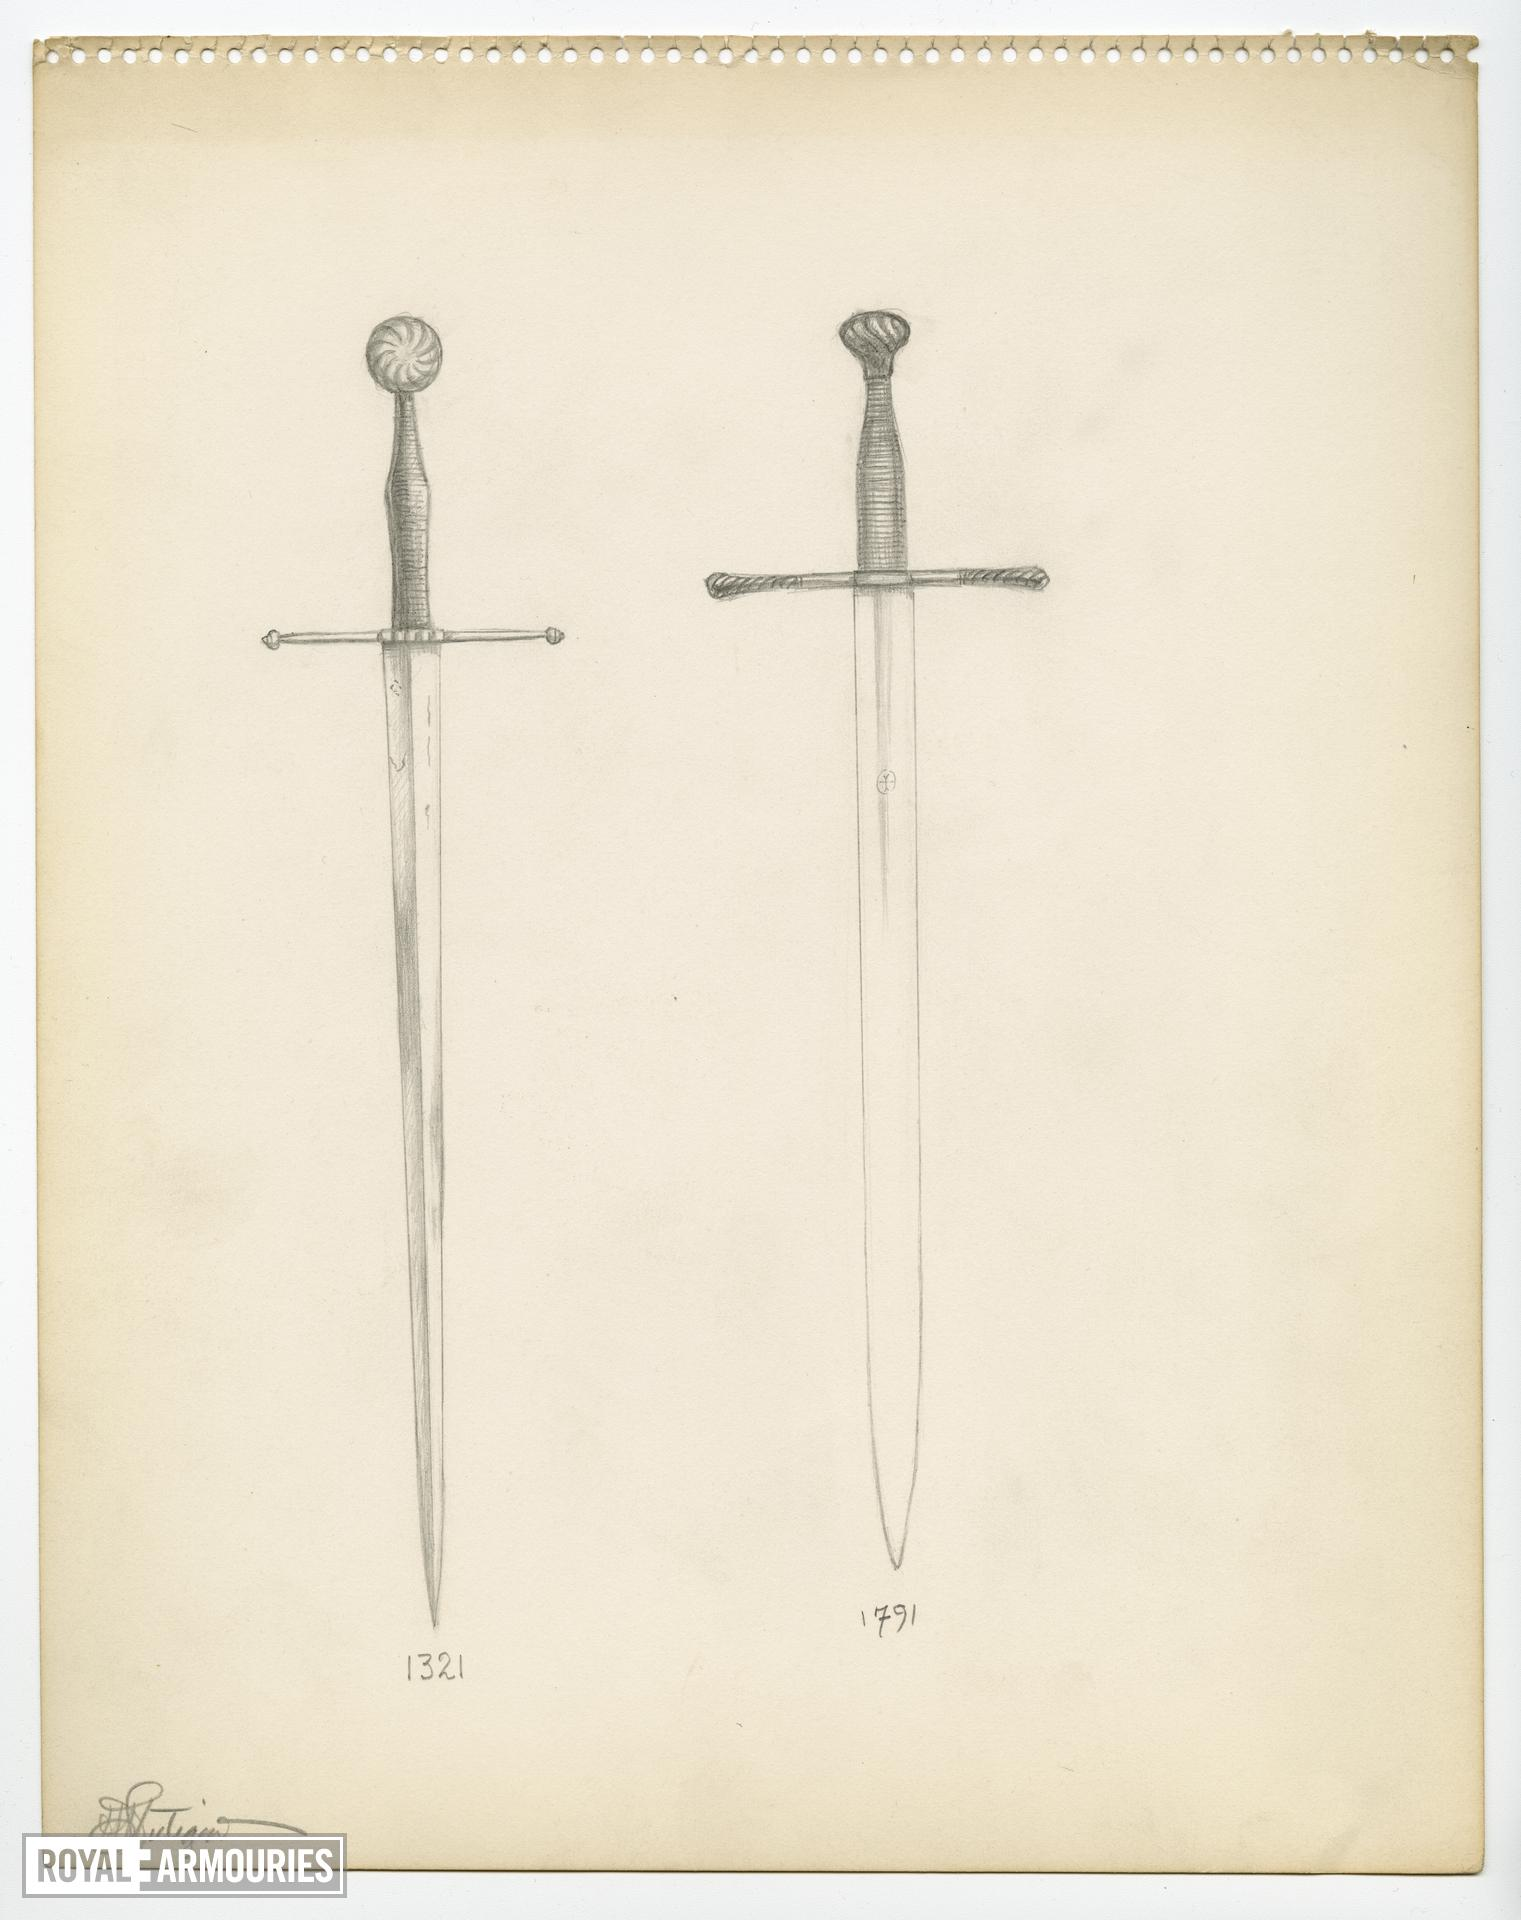 18 sheets of sketches of various swords, signed by H. Lutiger